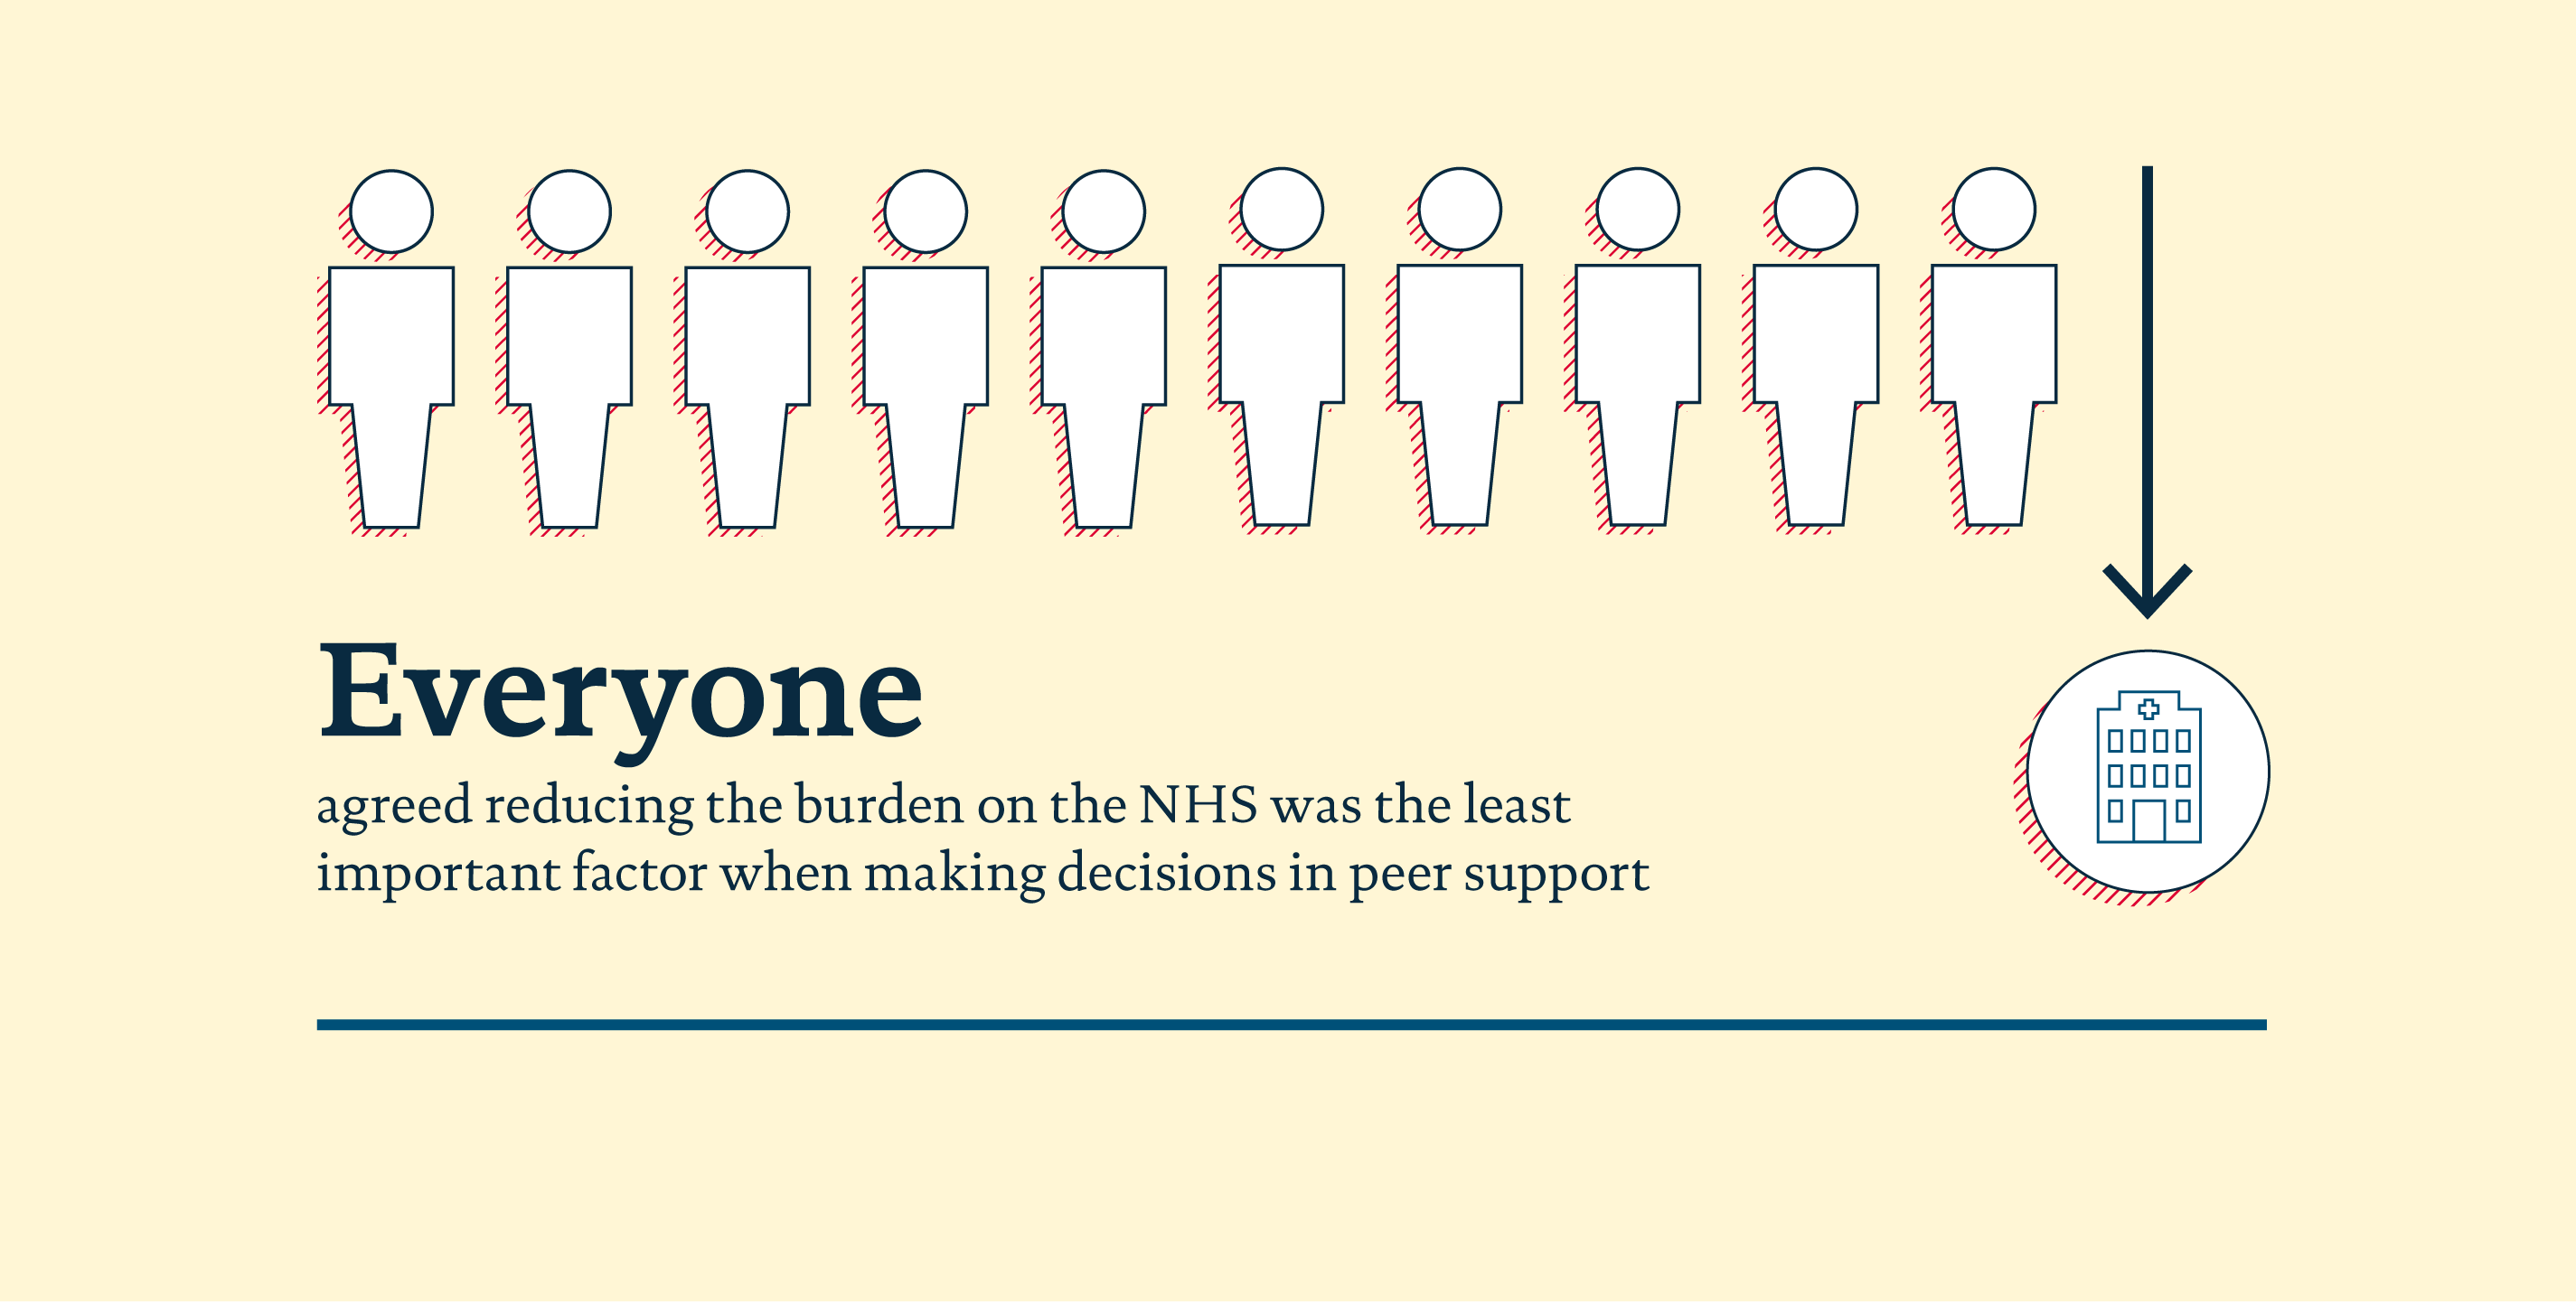 Infographic from peer support survey showing the least important factor